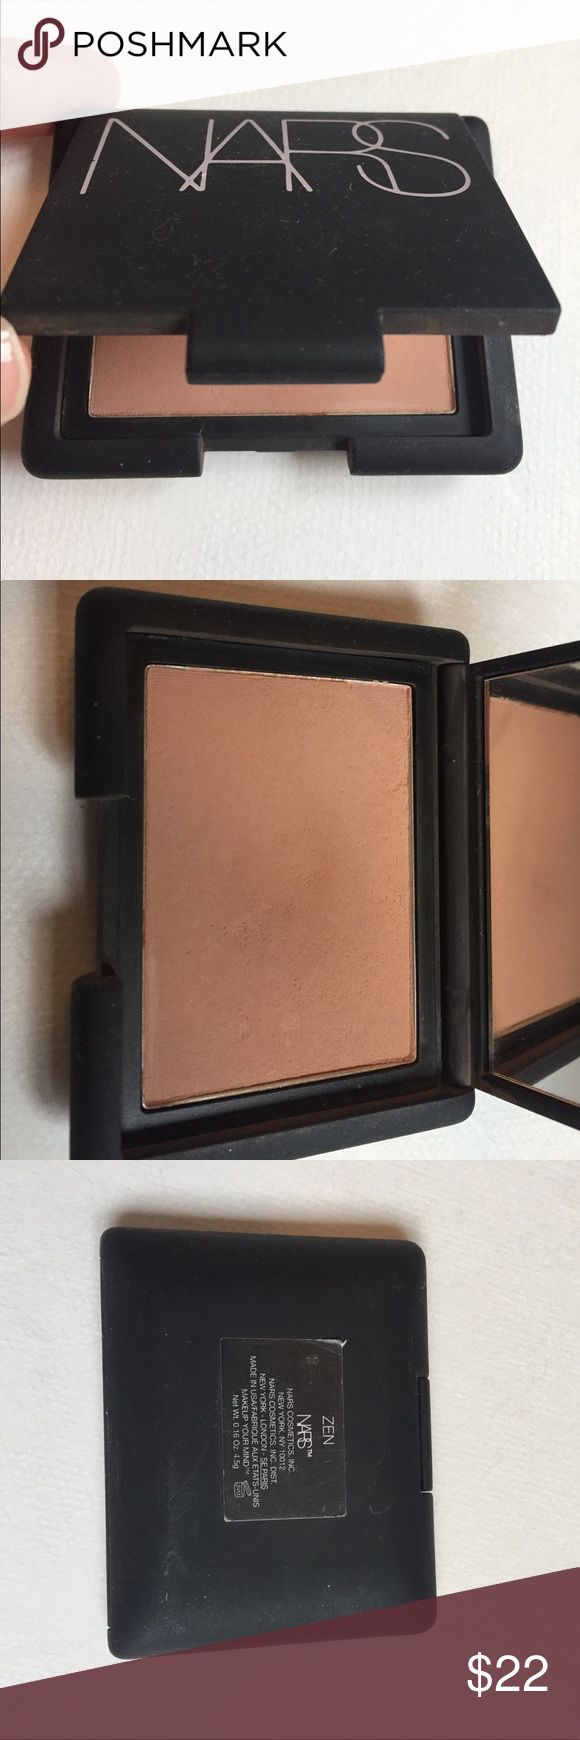 NARS Zen blush bronzer This NARS Zen blush bronzer can be used as a blush or as a super natural bronzer. This gorgeous shade looks naturally sun kissed without those orangey undertones of other bronzers. This item has been gently used 3-4 times. Grab this bronzer just in time for summer! NARS Makeup Bronzer